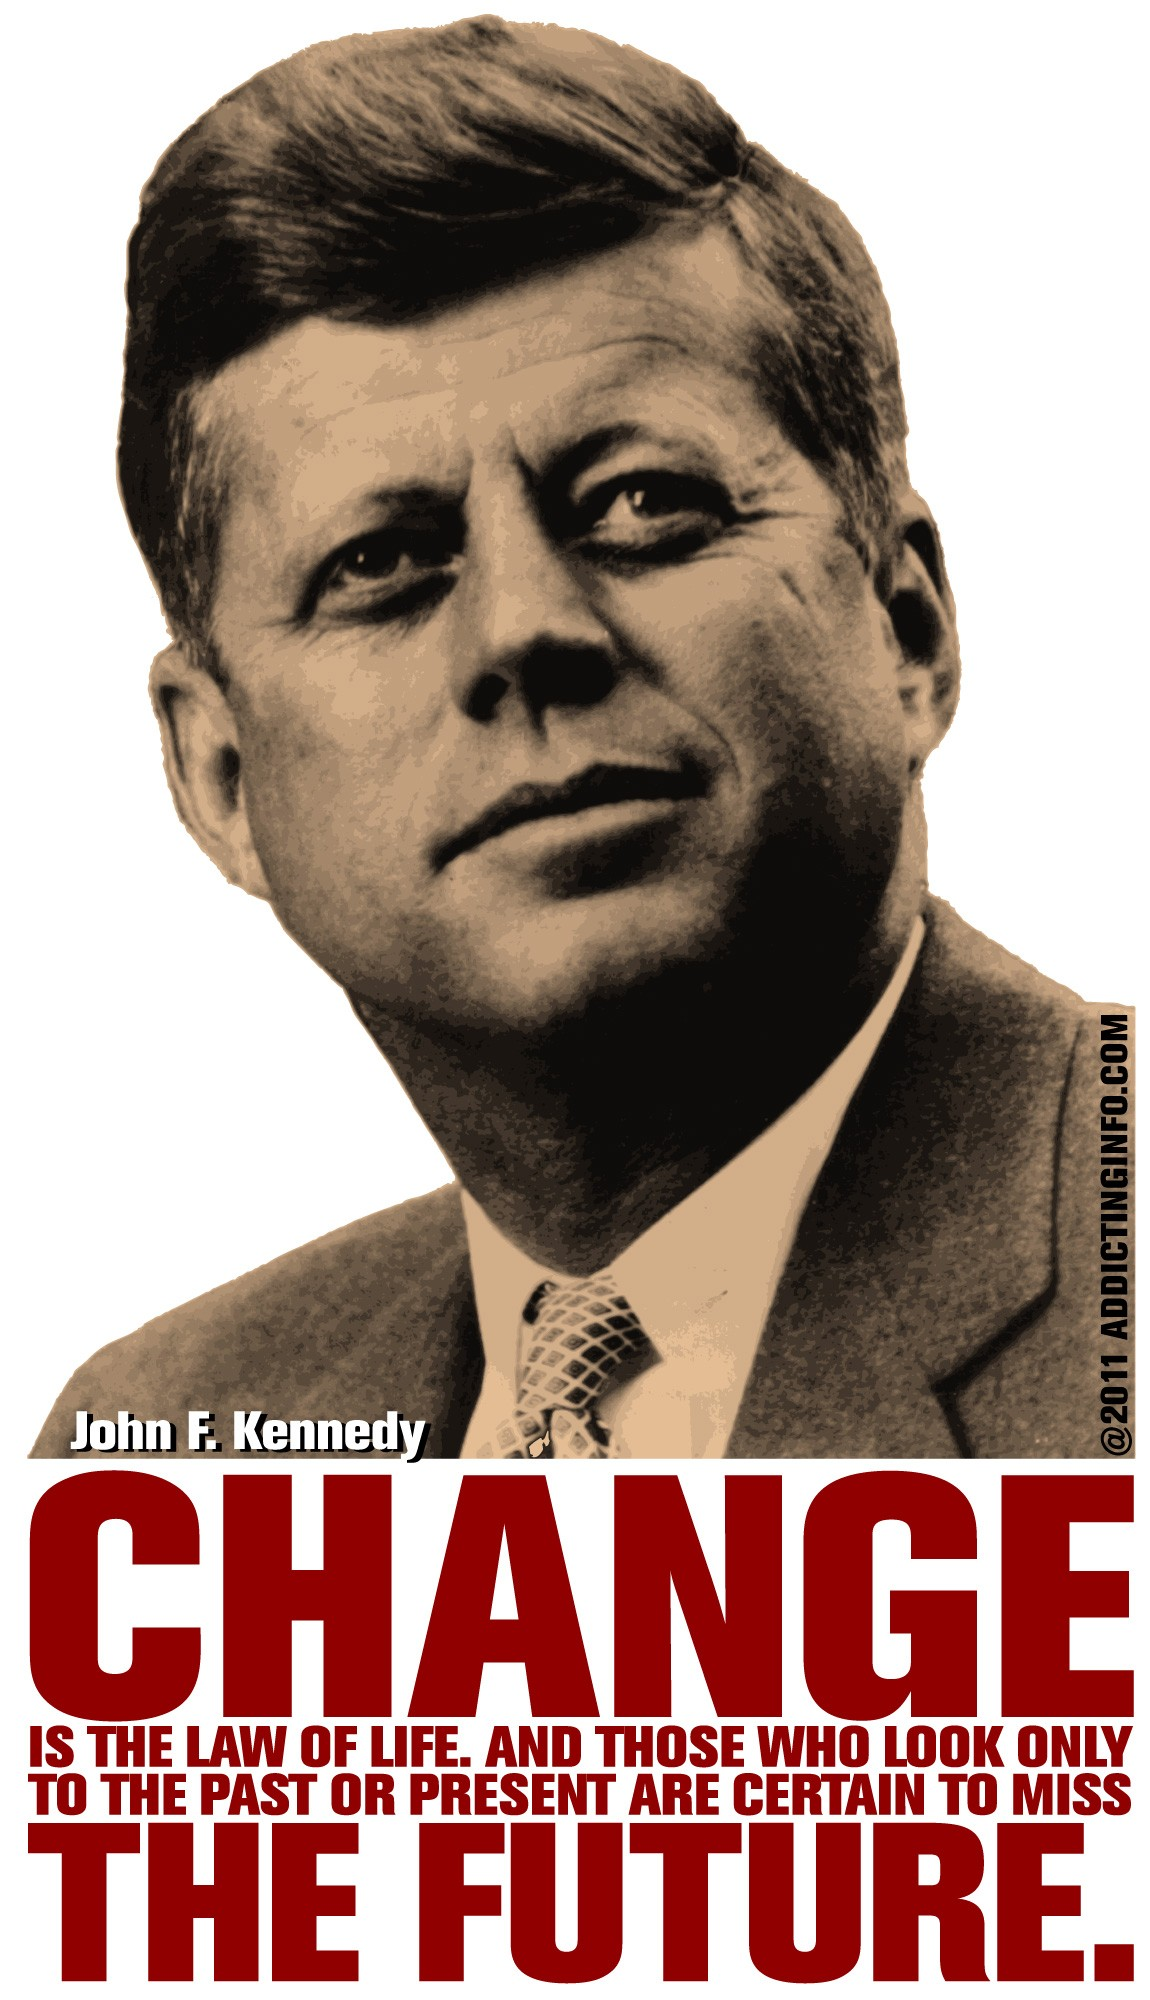 Jfk Quotes Wallpapers John F Kennedy S Quotes Famous And Not Much Sualci Quotes